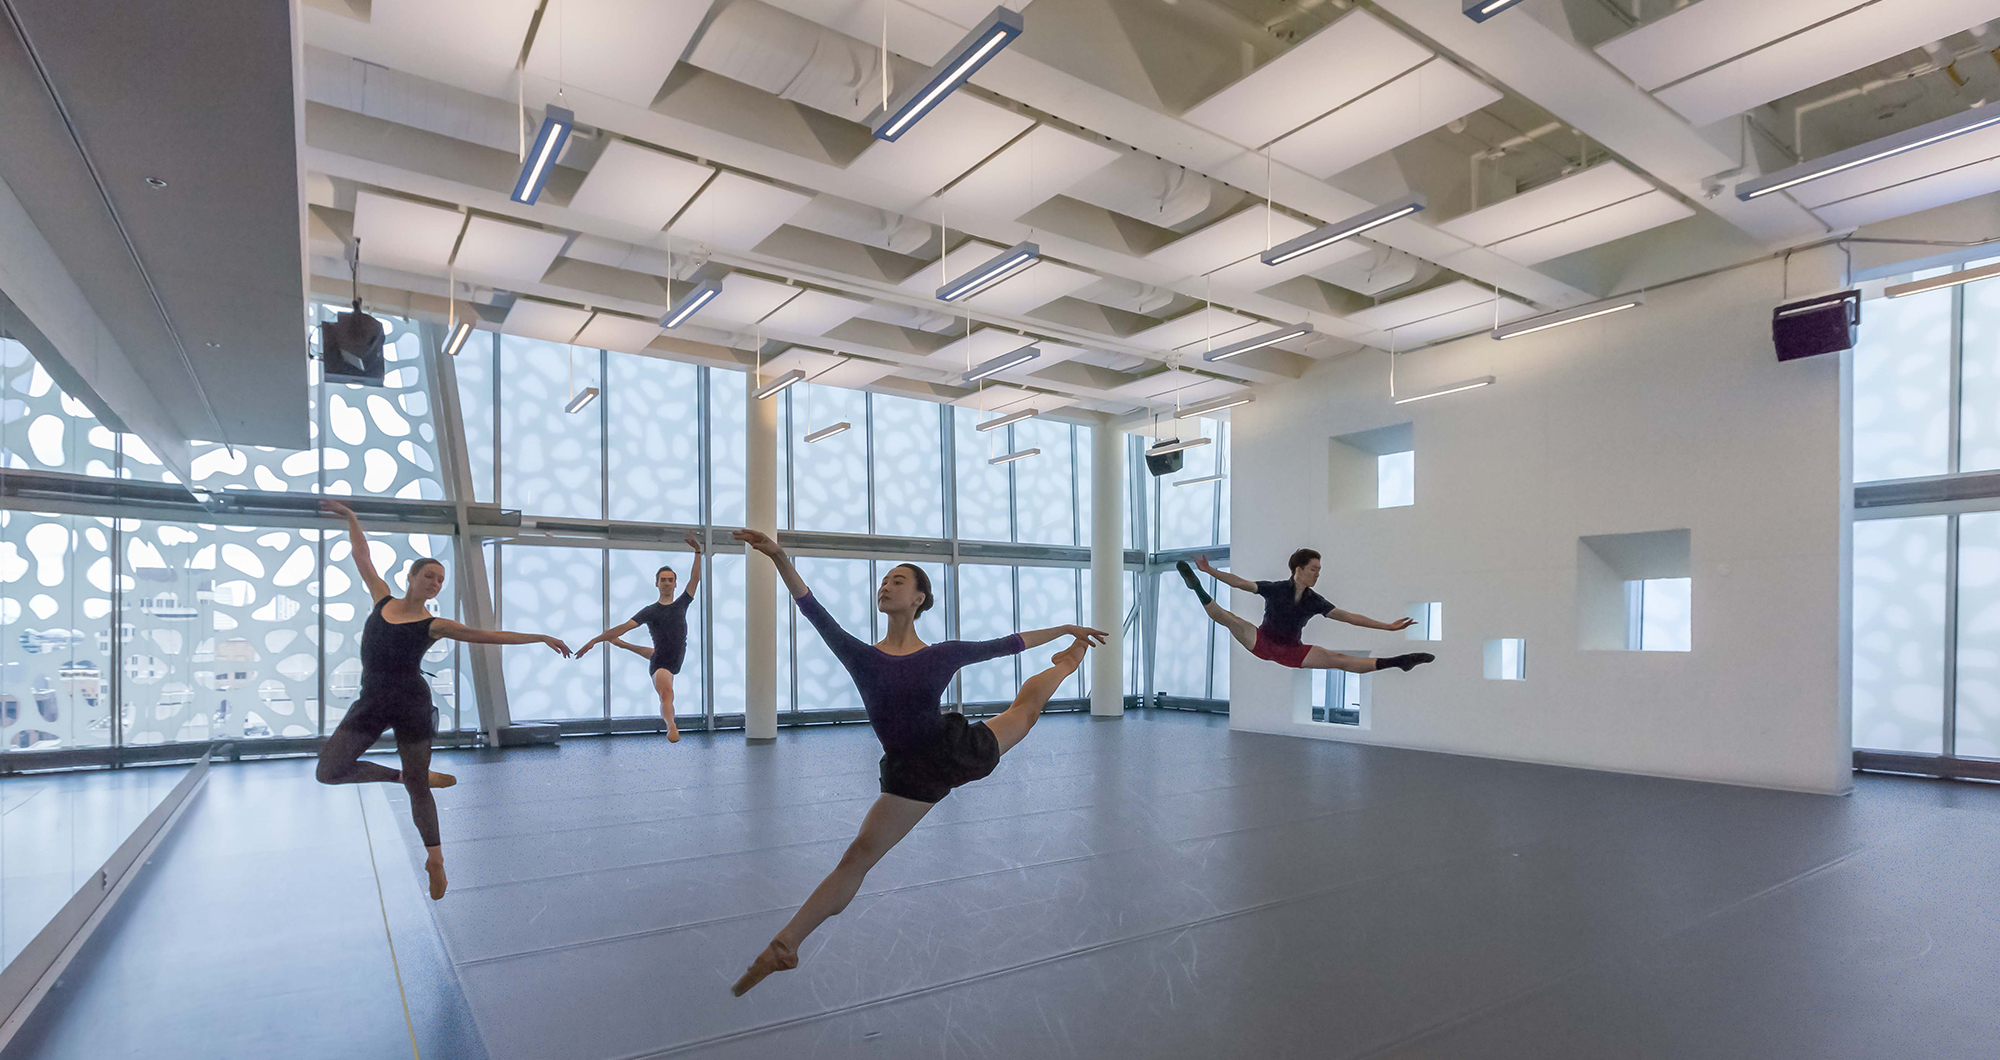 Dance studio with beautiful Solera panels diffusing natural light throughout.